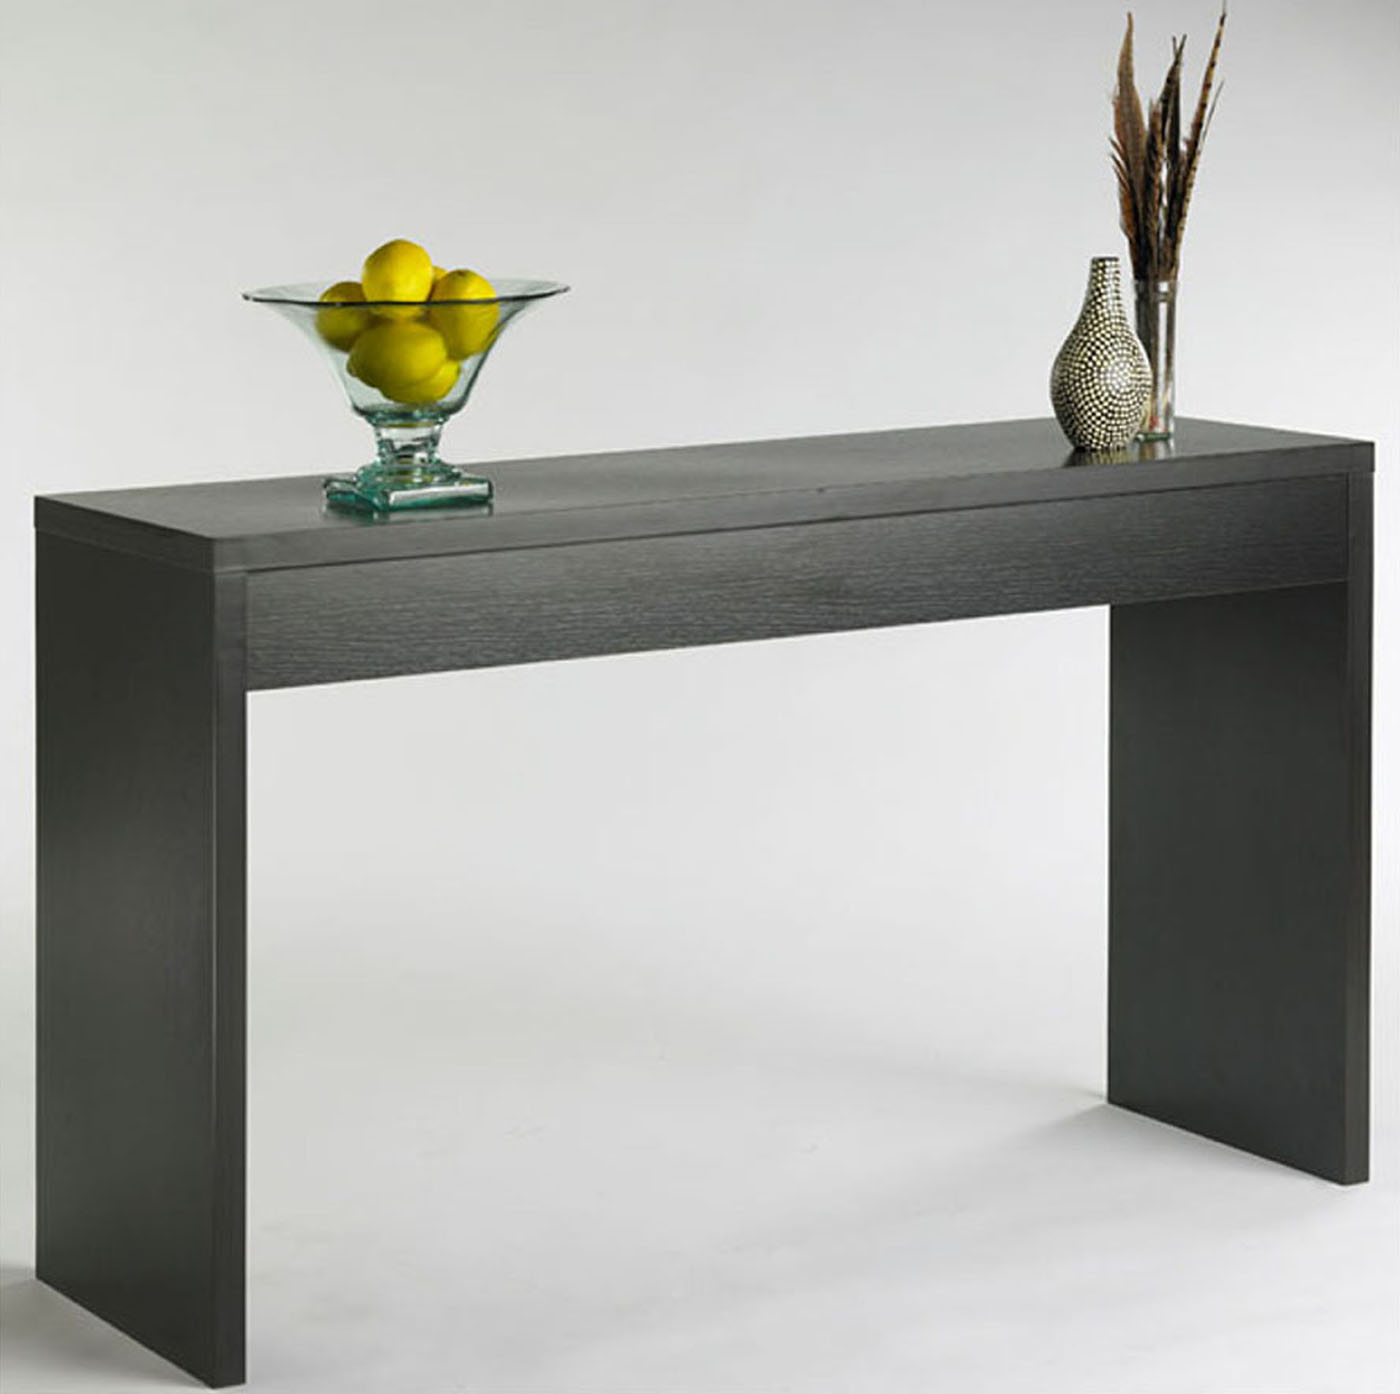 Northfield Wall Console Table in Accent Tables